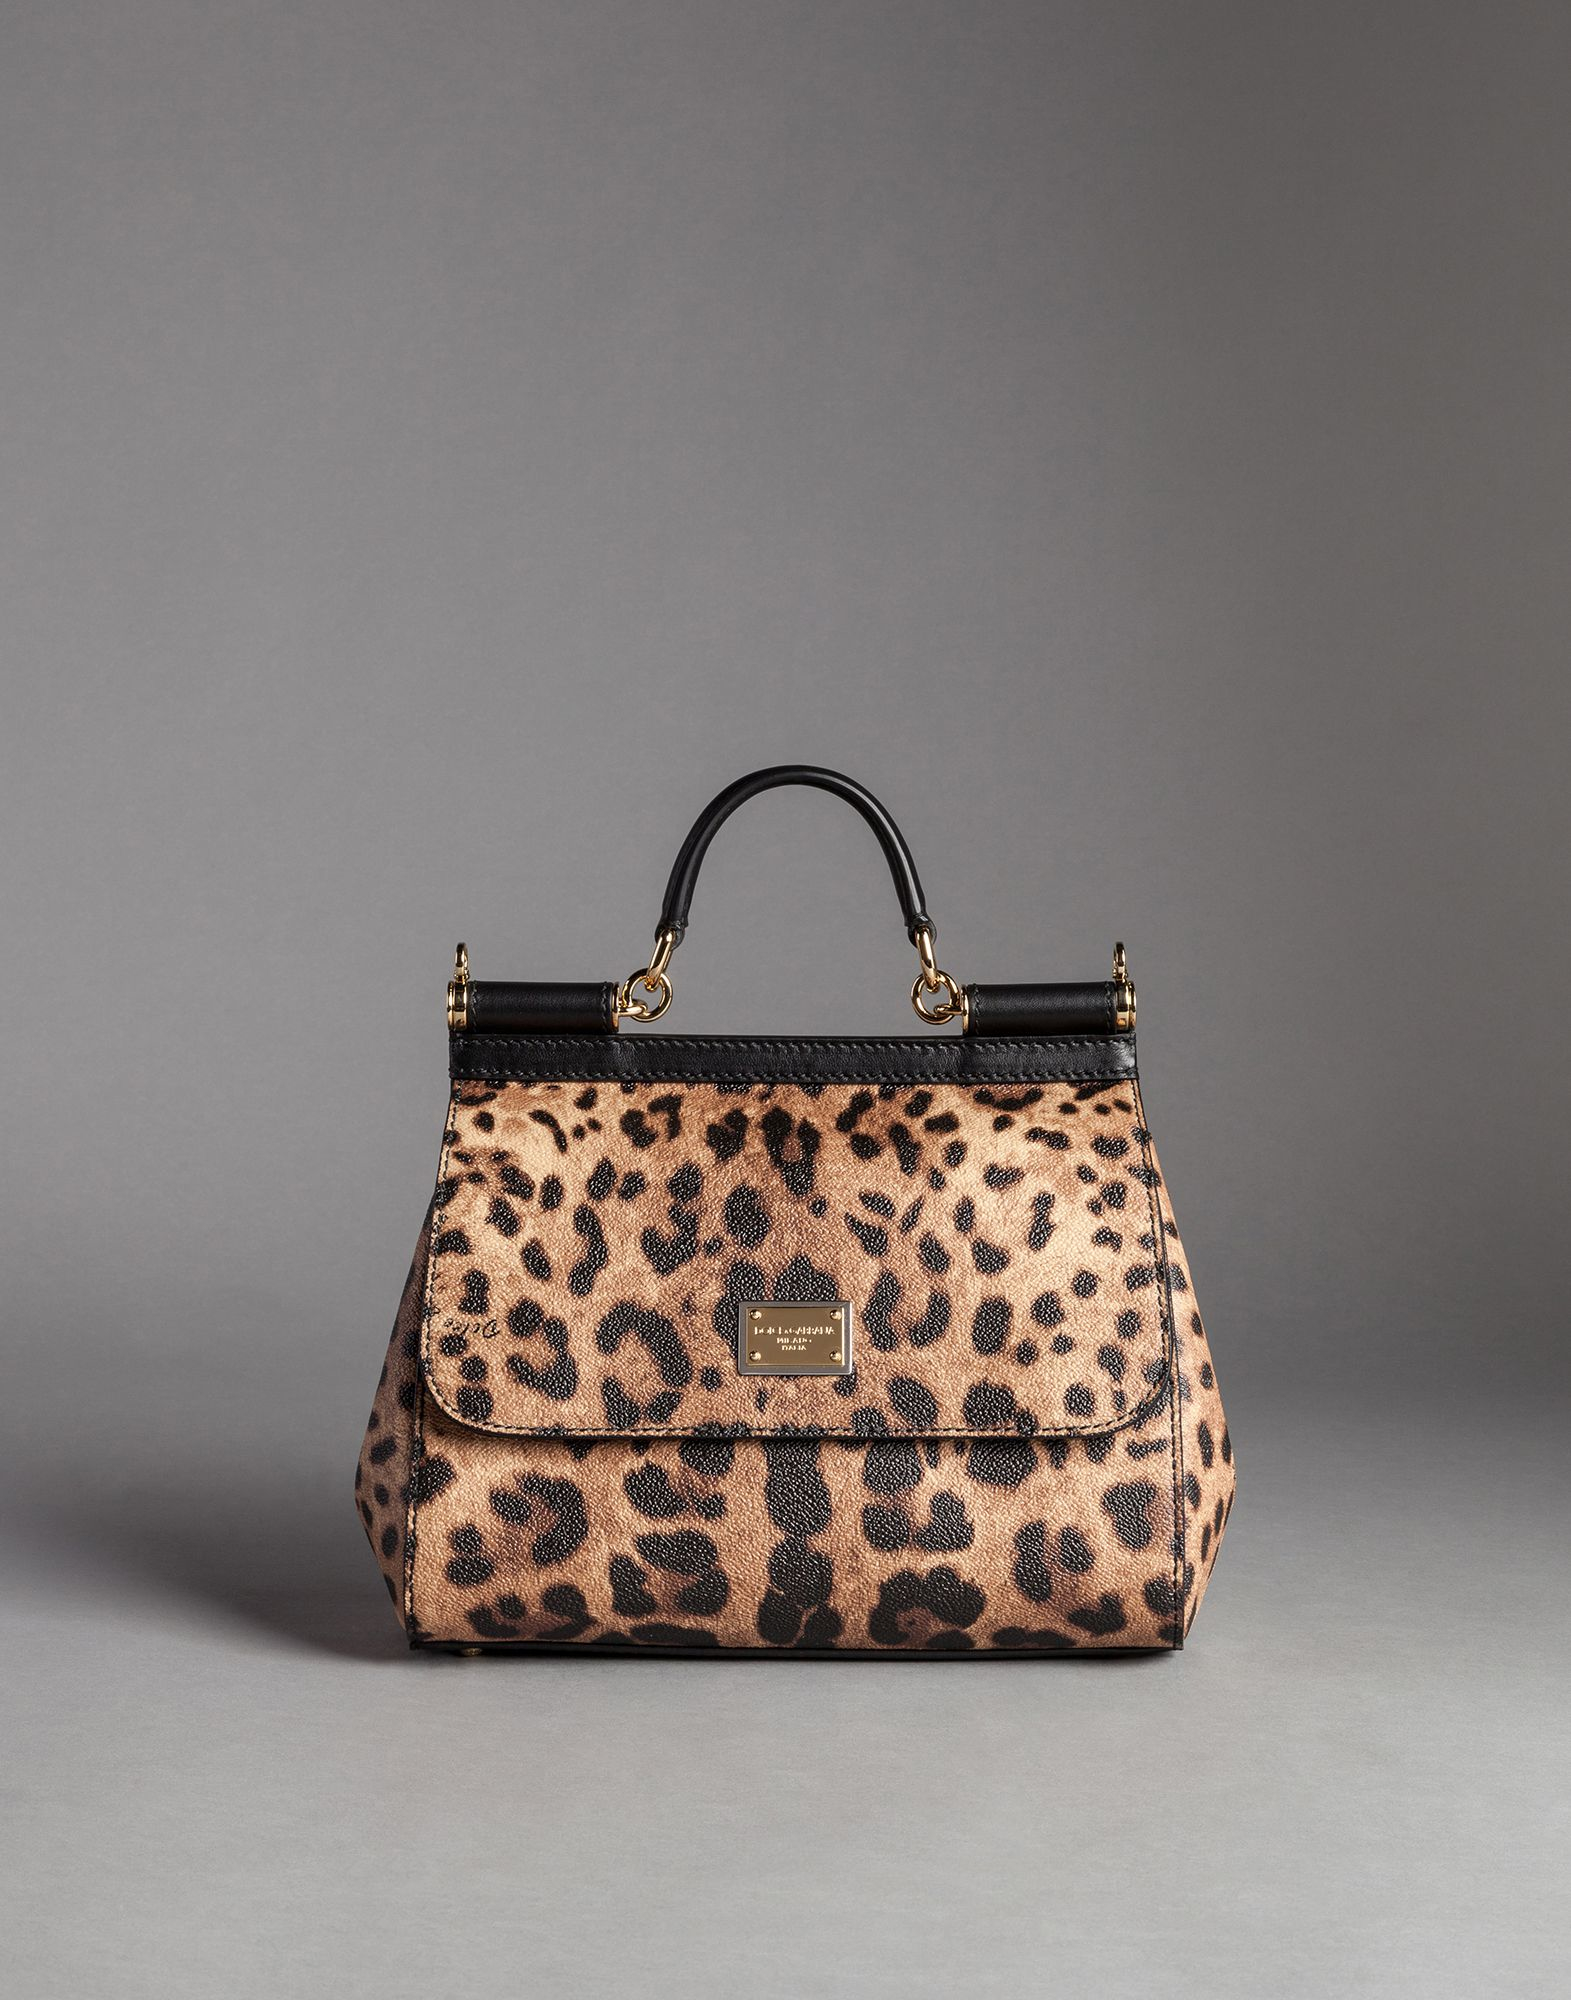 b79f6d5be3 Lyst - Dolce   Gabbana Medium Sicily Bag In Leopard Textured Leather ...